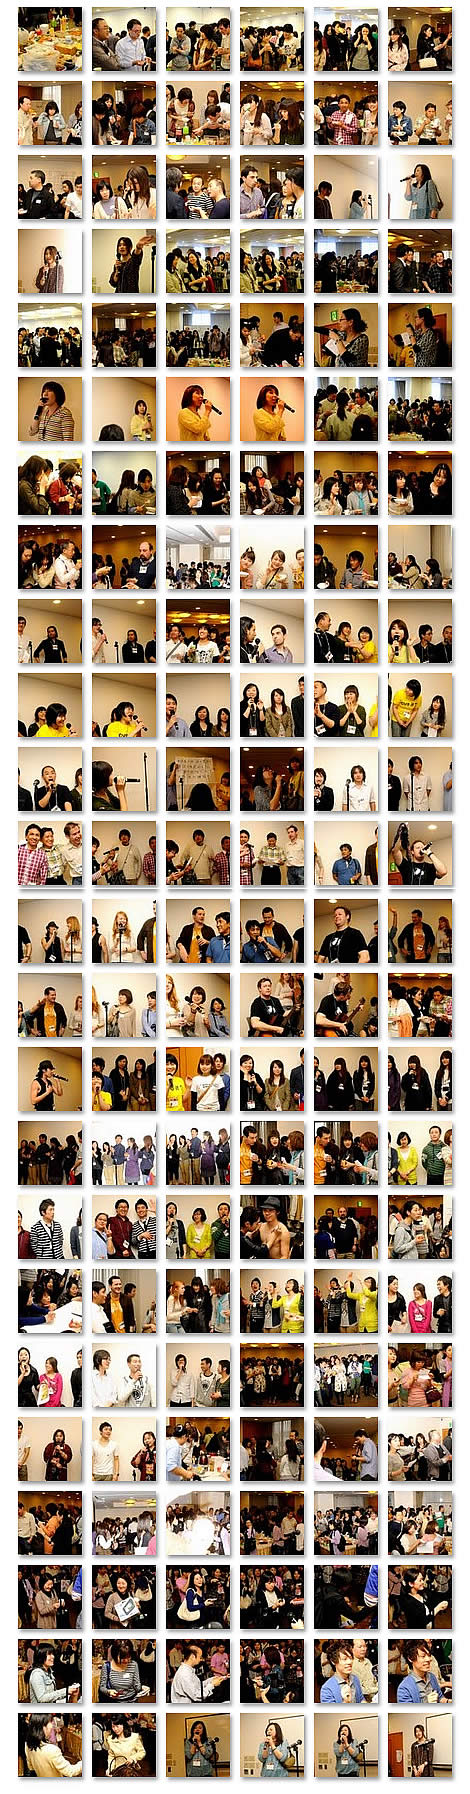 cflat-party_20110419125124.jpg